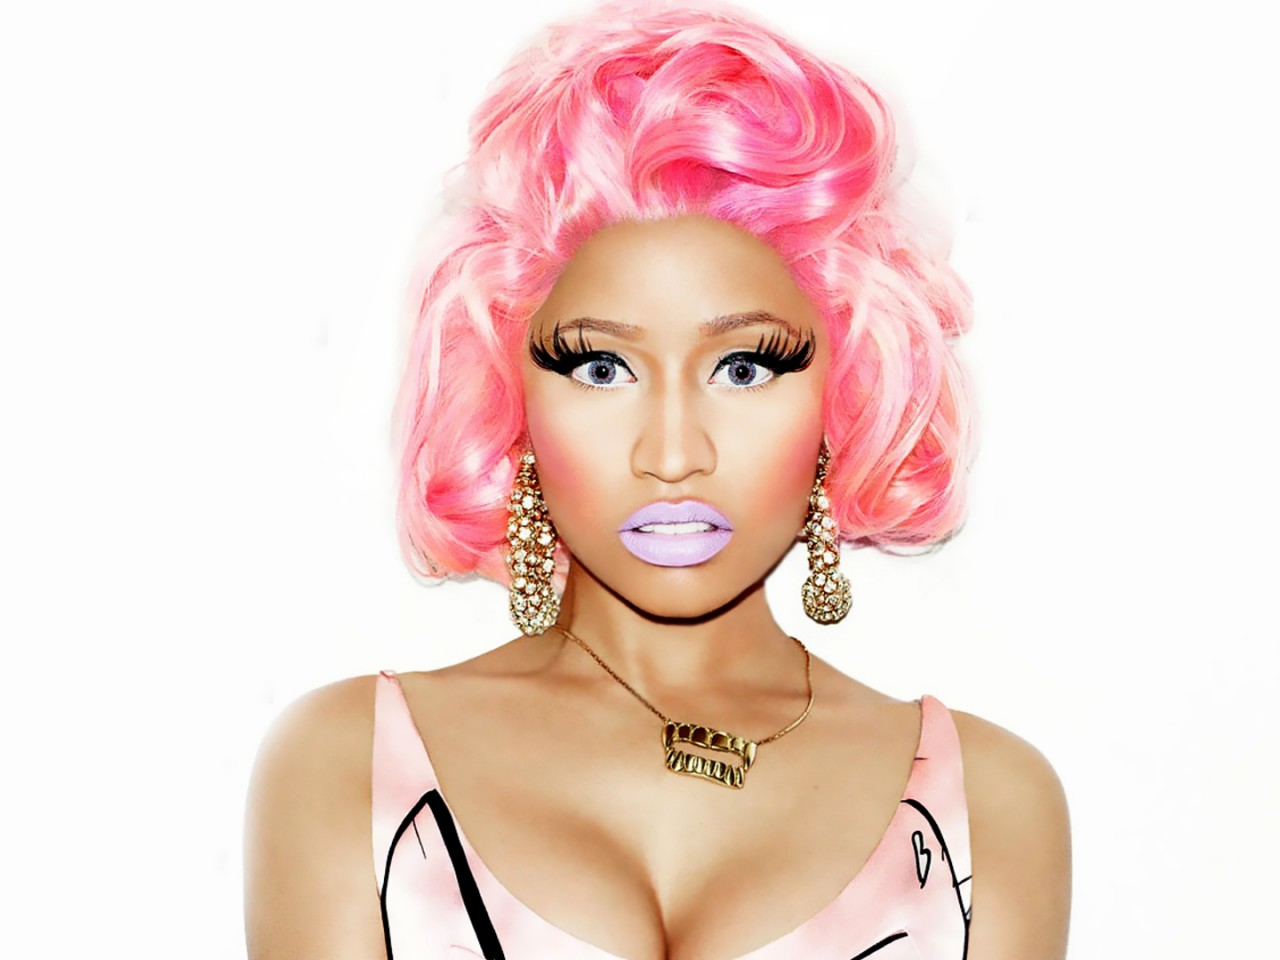 Download nicki minaj wallpaper HD wallpaper 1280x960